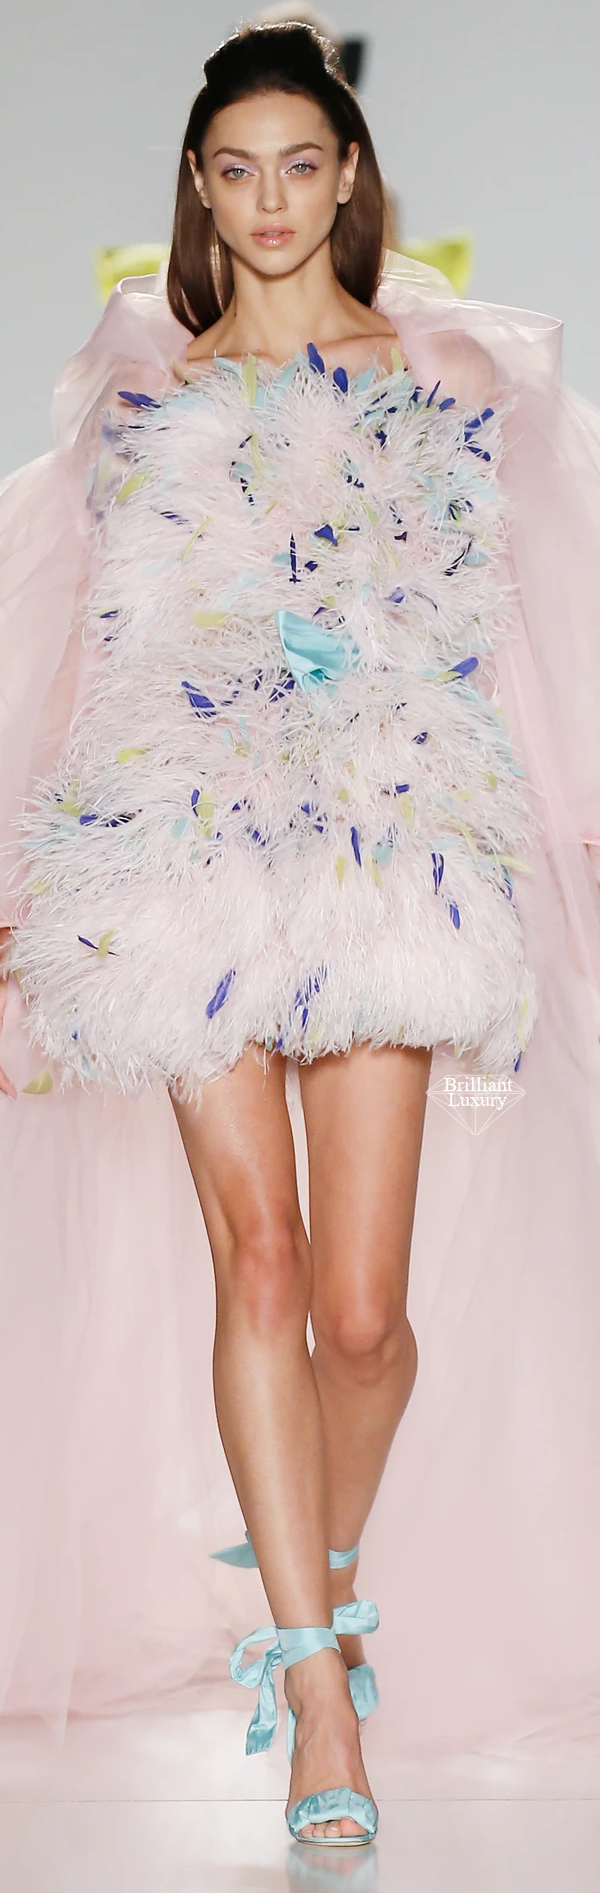 Ralph & Russo pale pink off-the-shoulder mini dress fully embellished with xilions sequins ostrich and coque feathers in hues of oceana chartreuse and cobalt blue #brilliantluxury